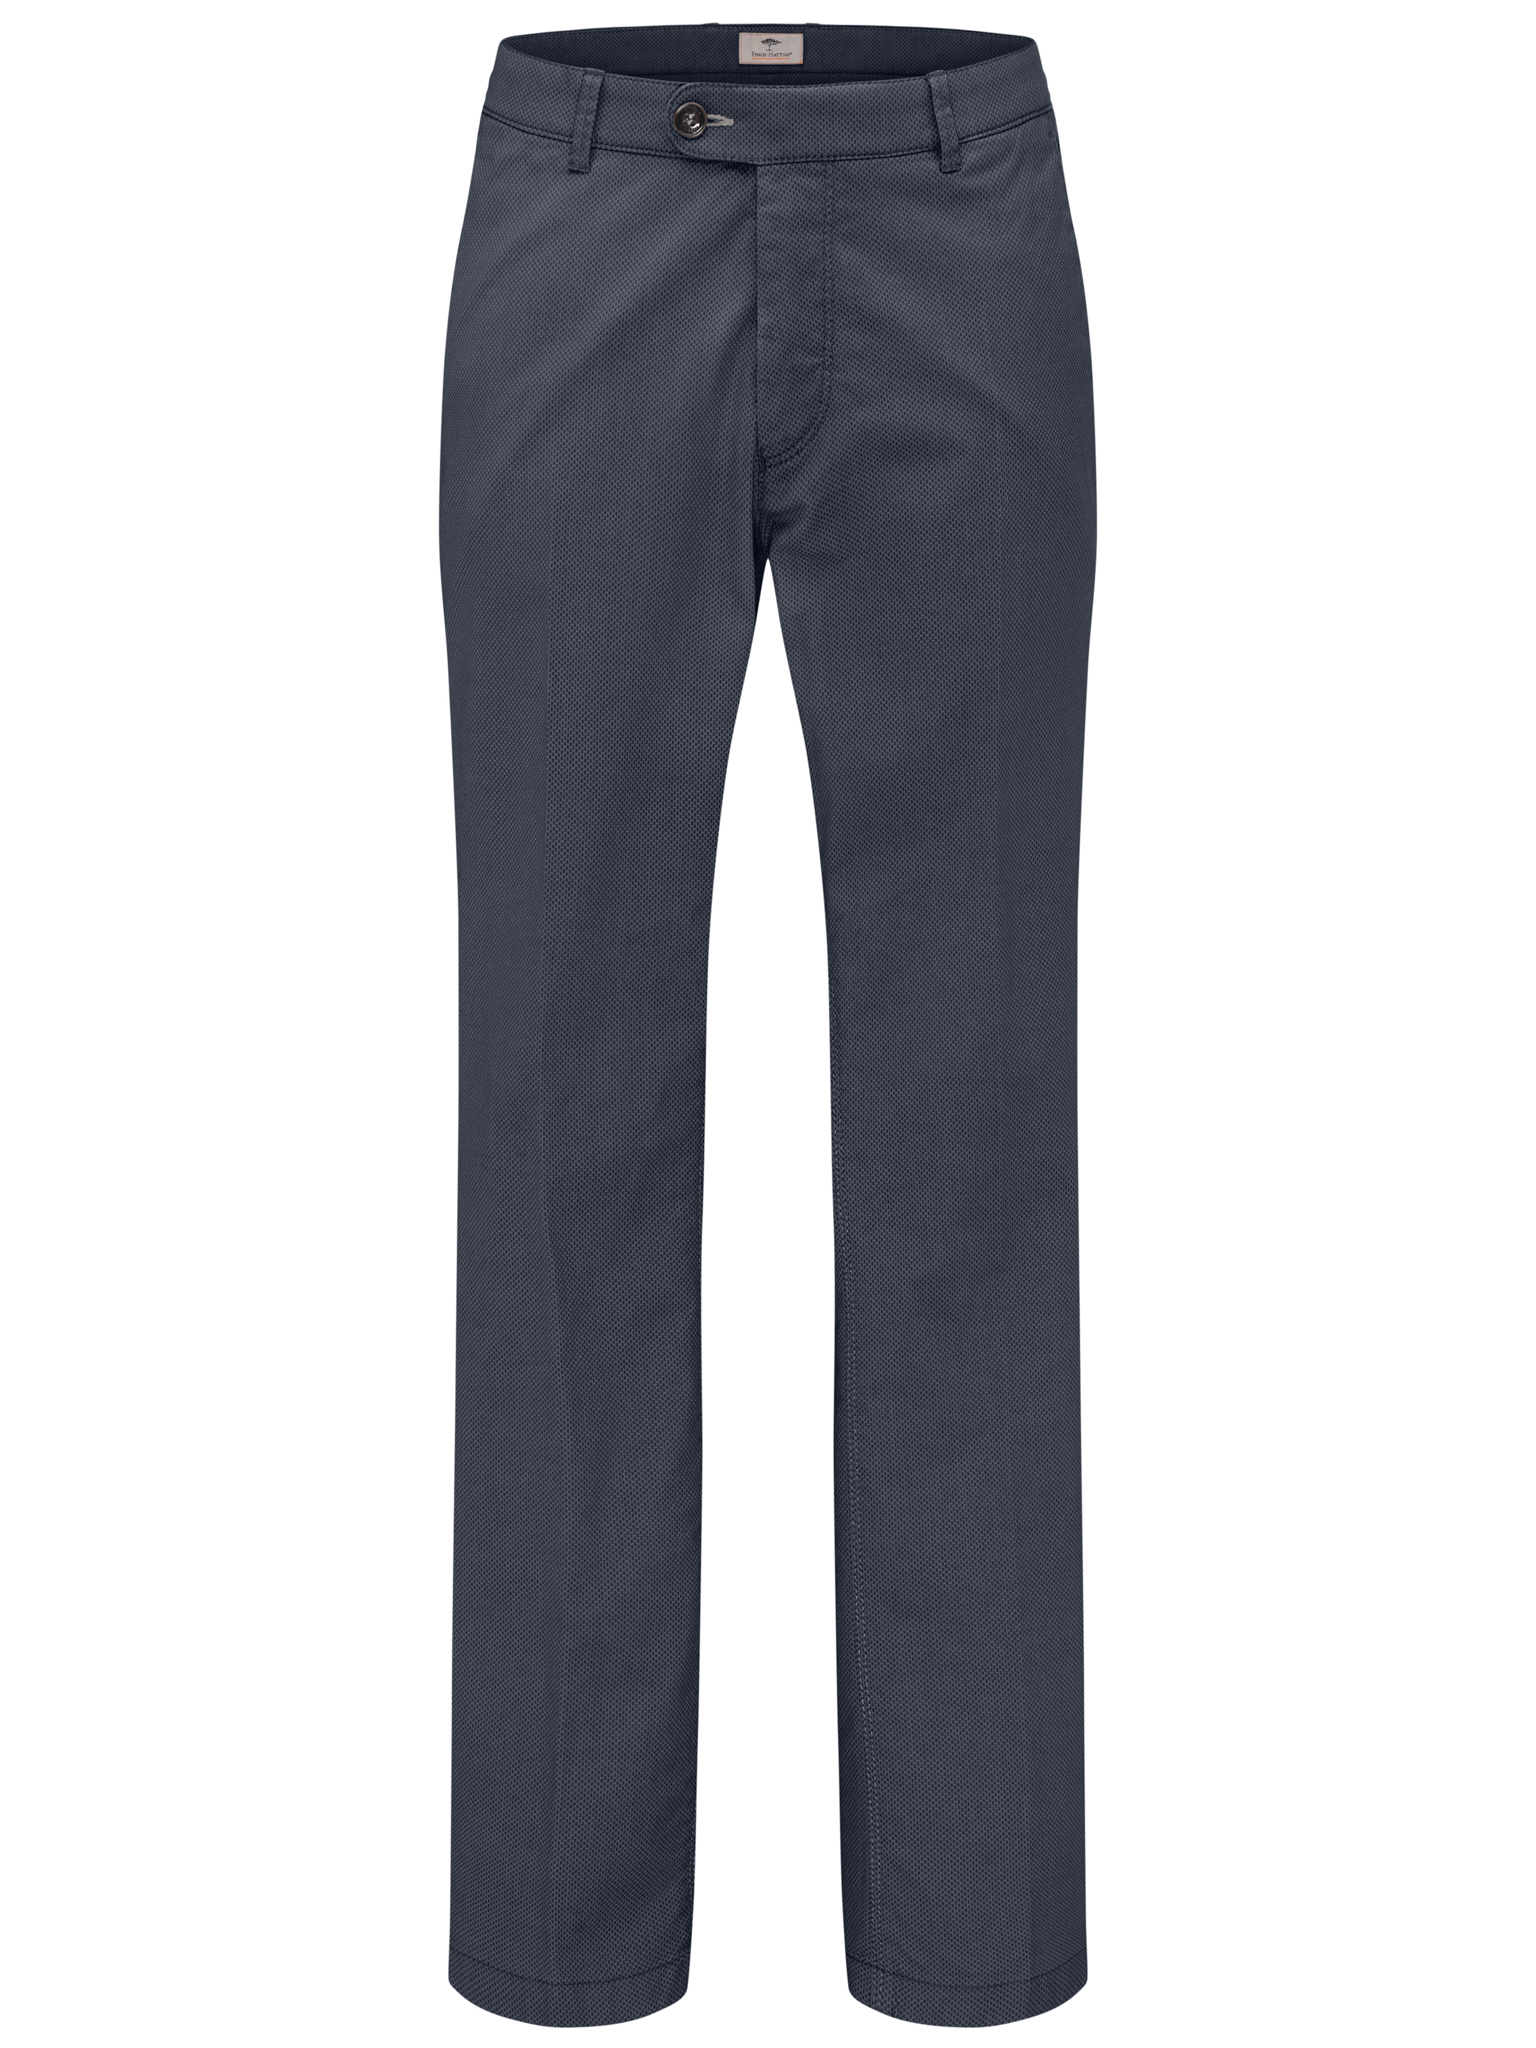 Fynch Hatton flat front navy trousers